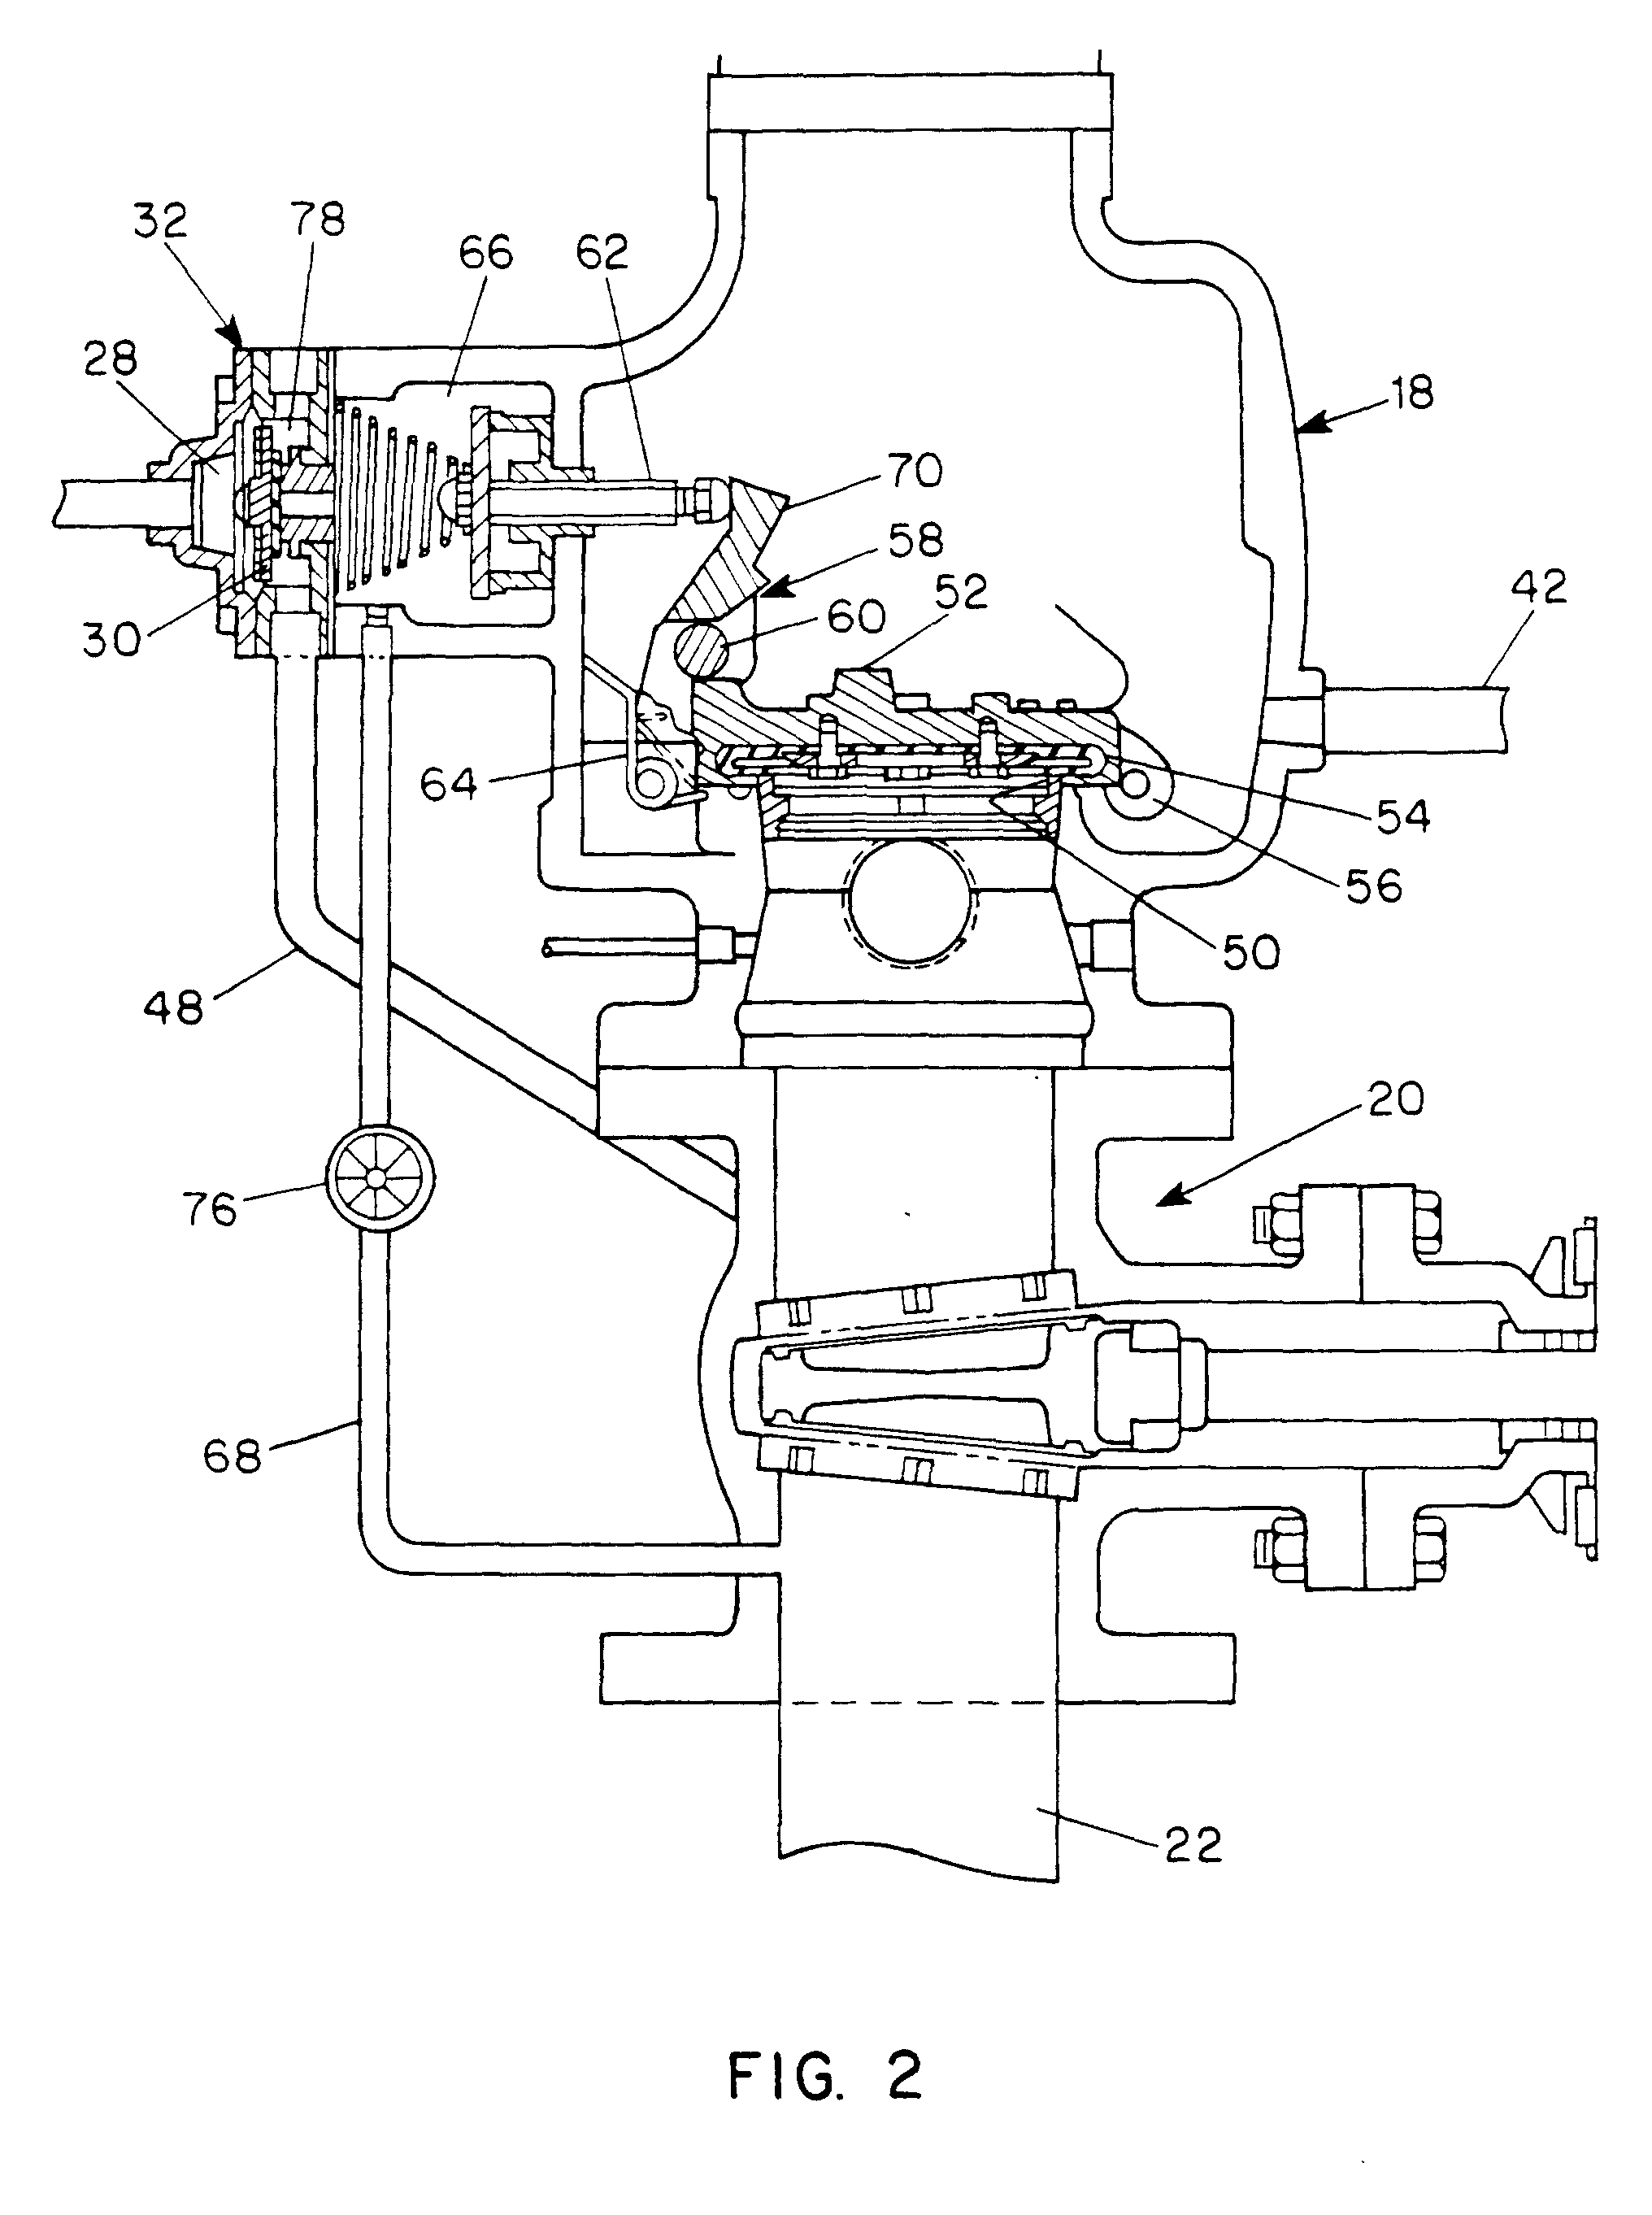 Gh 9893 2011 Chevy Cruze Cooling Fan Wiring Diagram Find